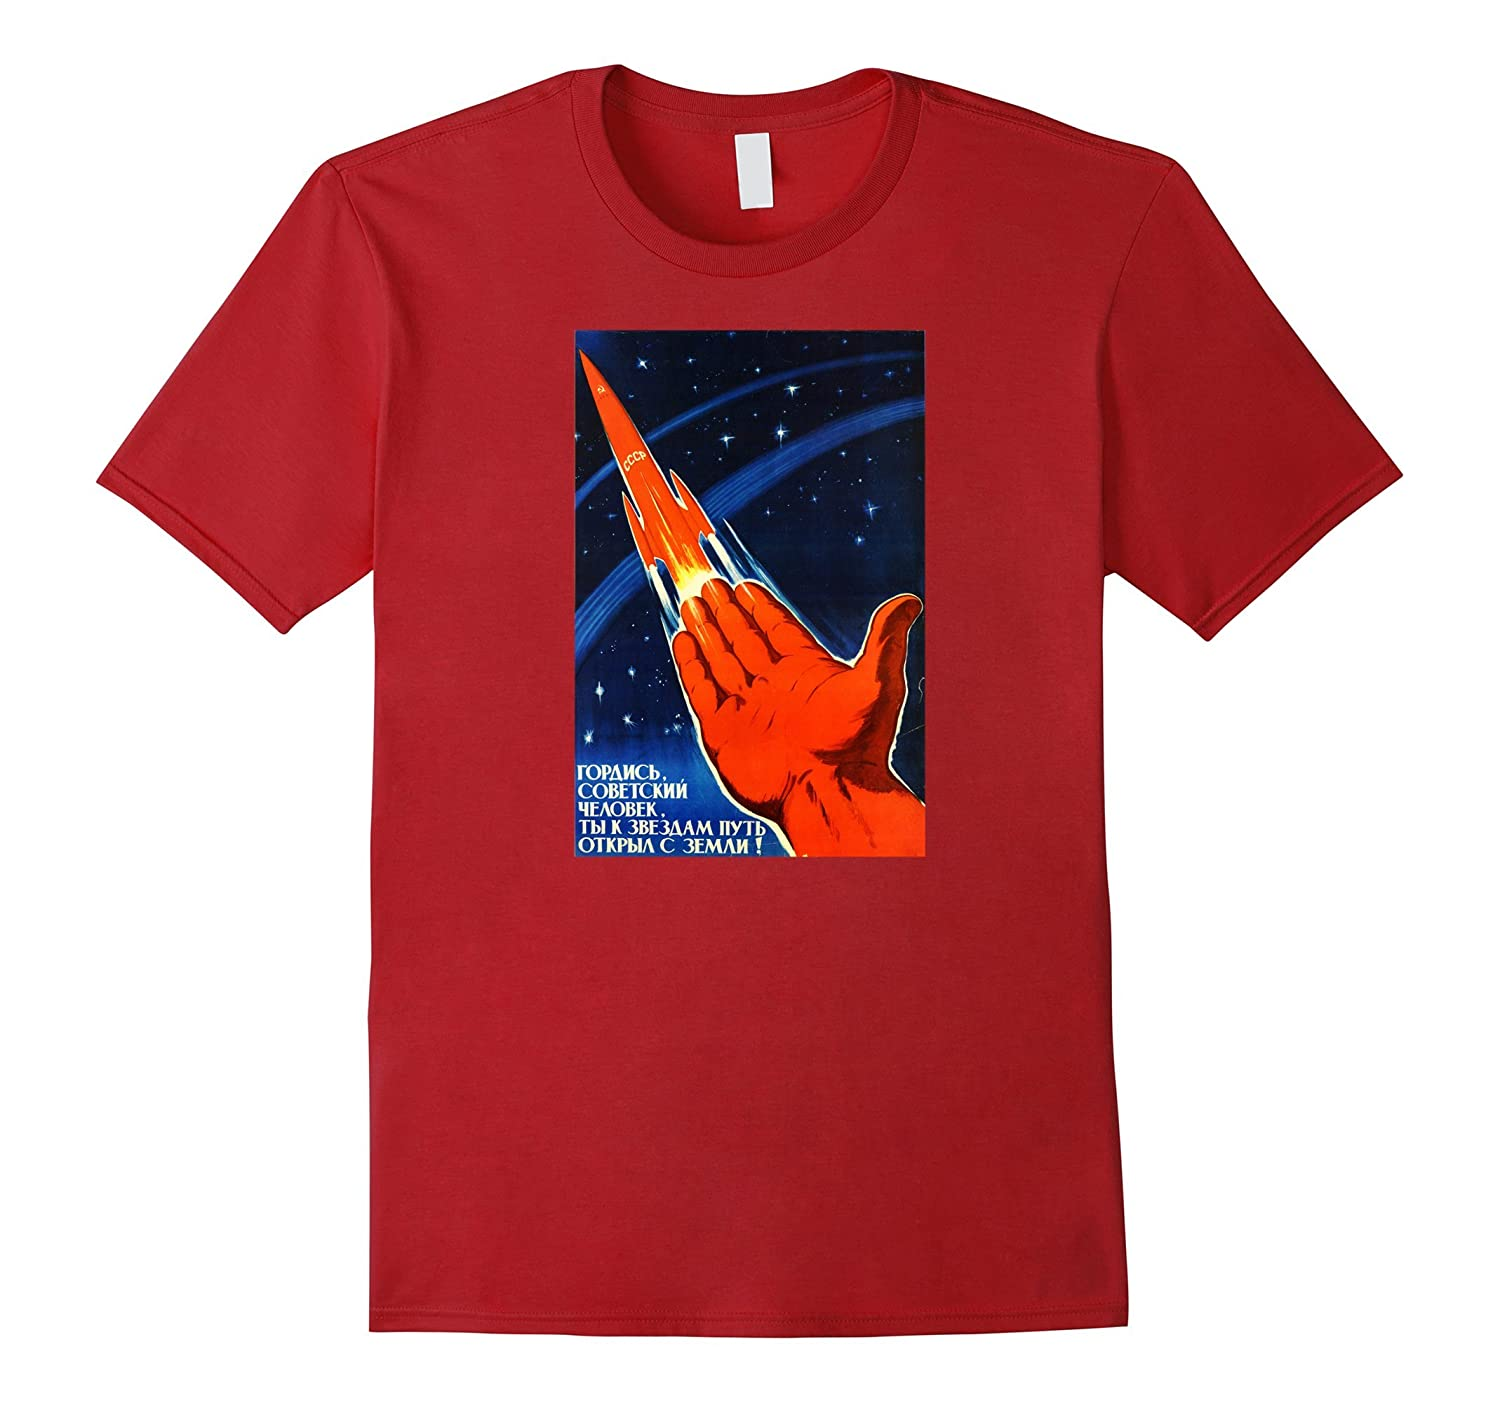 84808f3a9 Be Proud Space Program Vintage USSR Retro Soviet Poster Tee ...